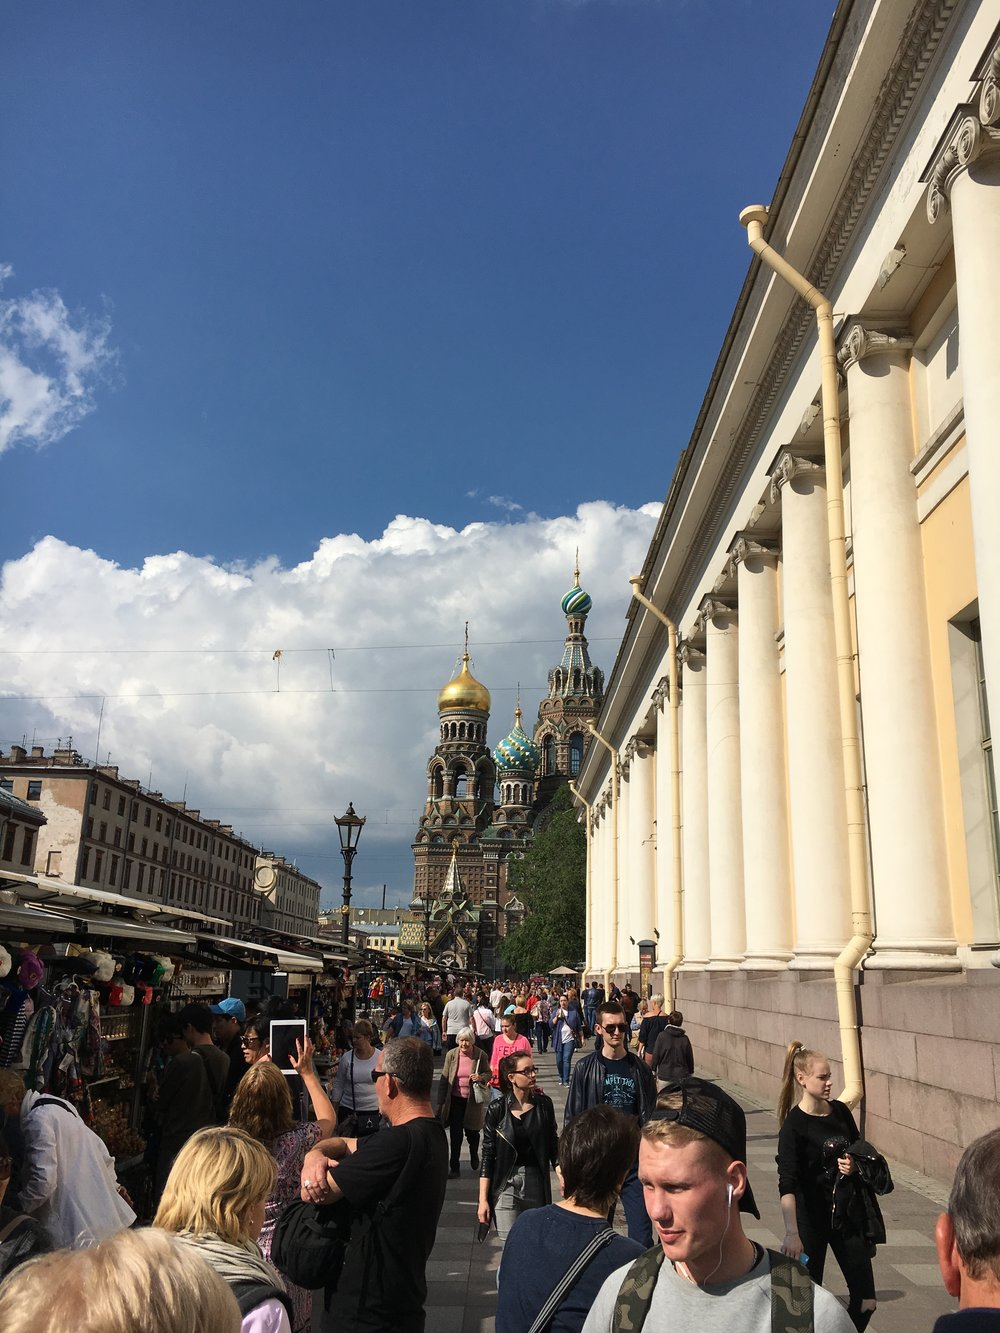 Approaching The Church of the Savior on Spilled Blood, in St. Petersburg.